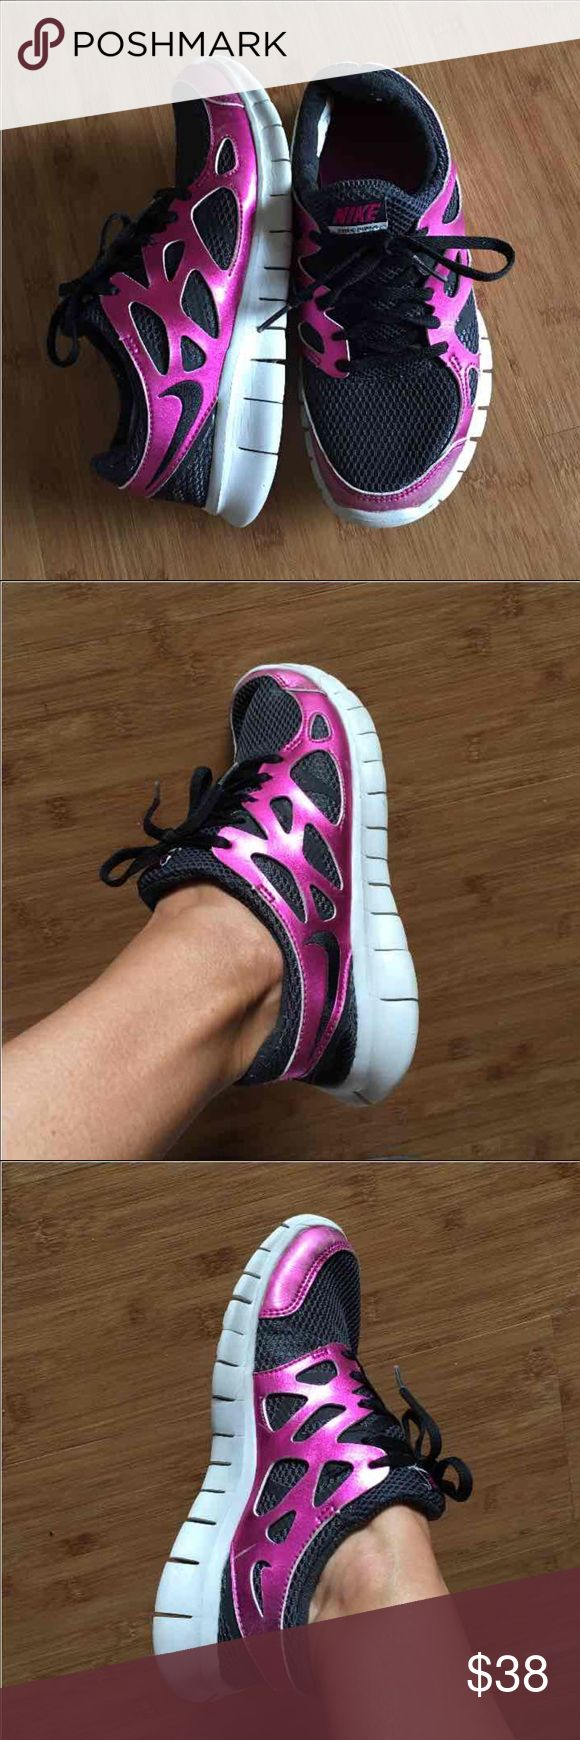 Nike Free Run Shoes, size 7.5 Nike shoes size 7.5, Free Run 2 in black and metallic hot pink! Gently worn but in great condition. Super comfy, light & beautiful! These shoes have Nike+ sensor capability that enables you to track your runs!The only sign of wear is lighter shade of metallic pink in the front but not very noticeable, looks intentional. Nike Shoes Athletic Shoes